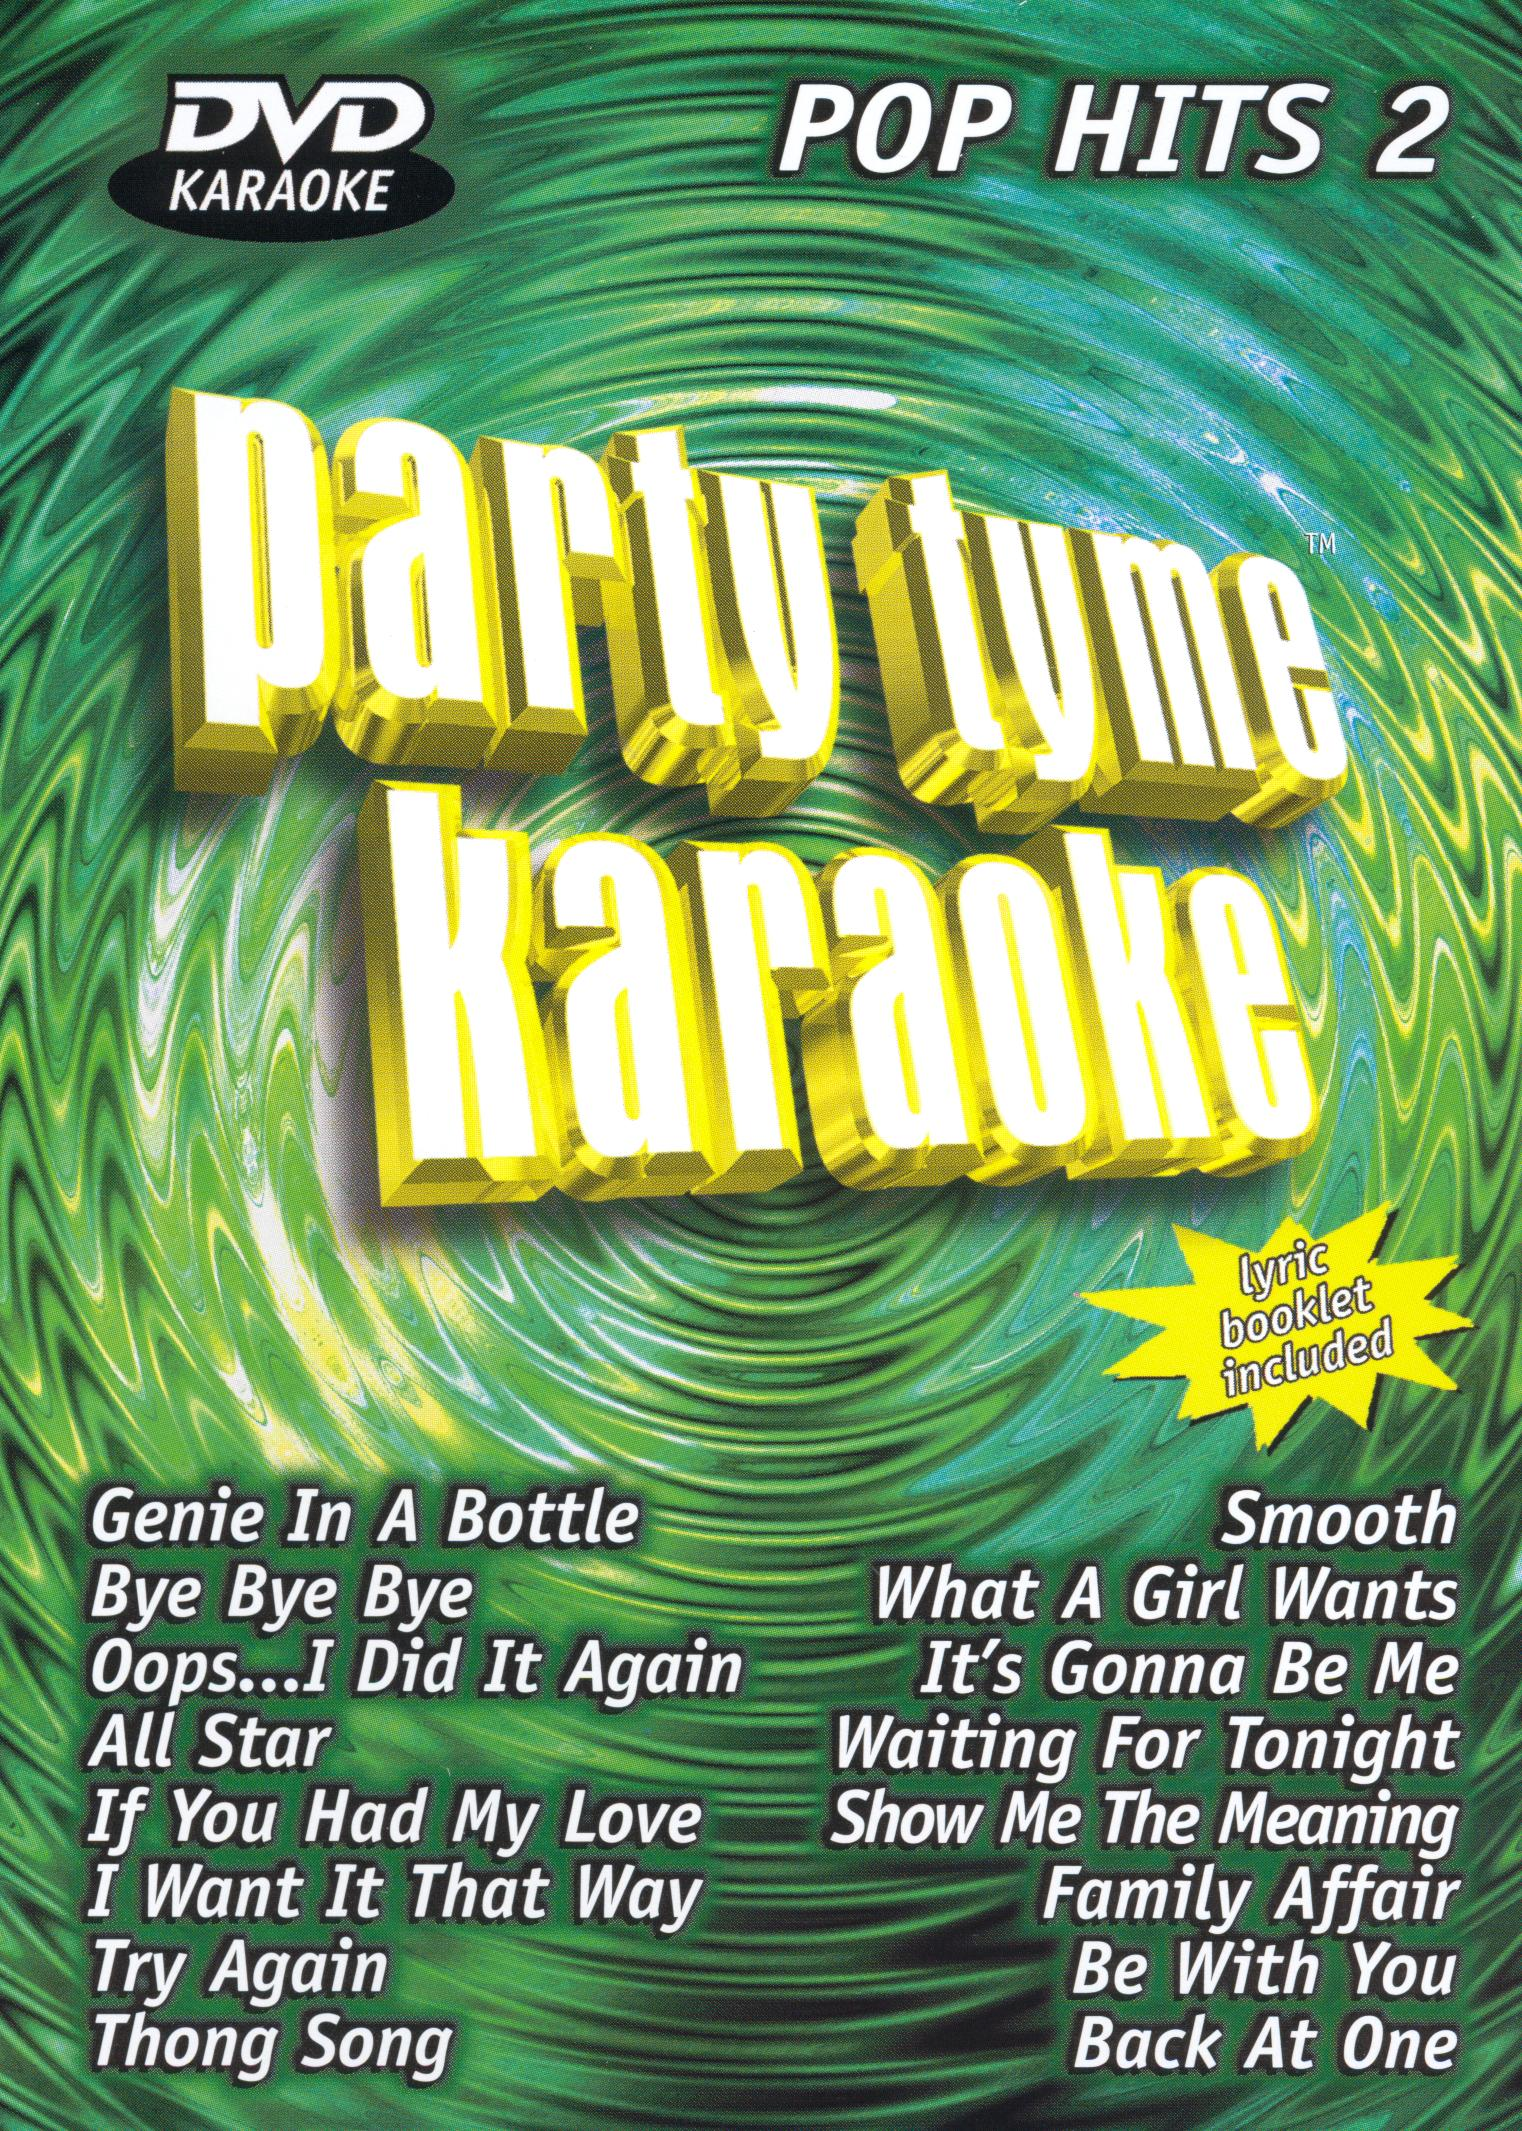 Party Tyme Karaoke: Pop Hits, Vol. 2